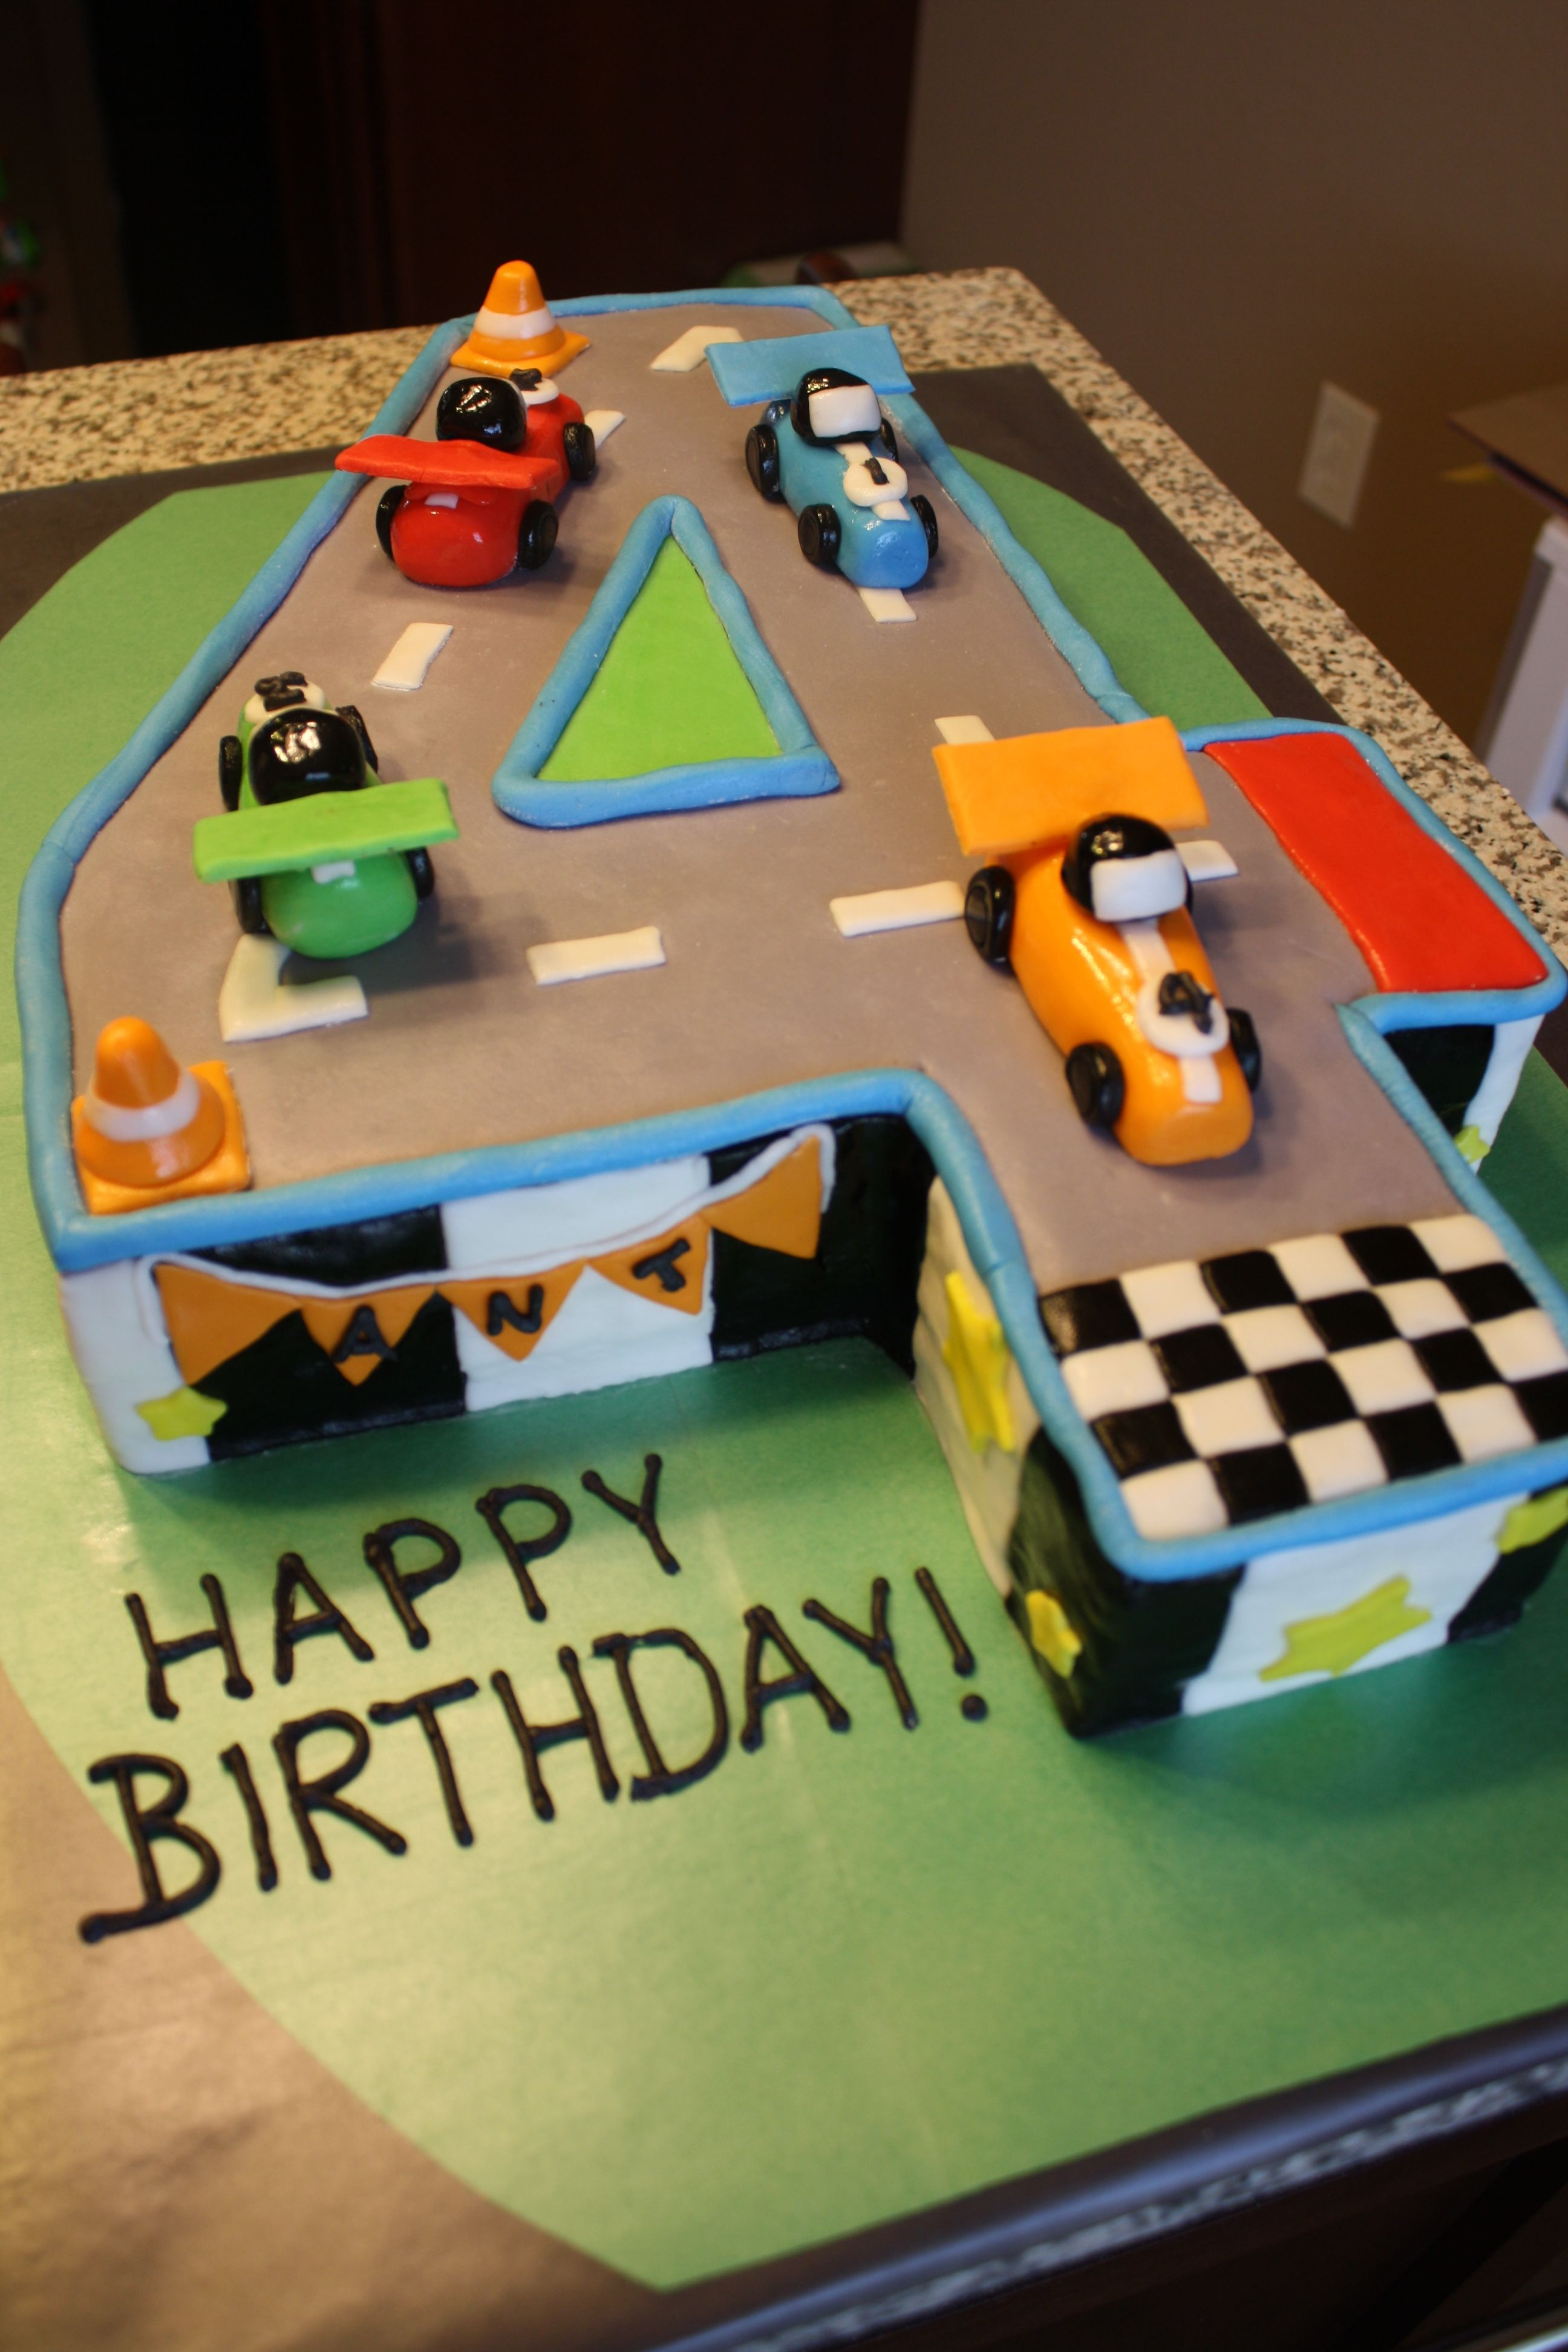 Race Car 4th Birthday Cake - My son wanted a race car cake for his 4th birthday, and he's very in to numbers right now - he just loved this!